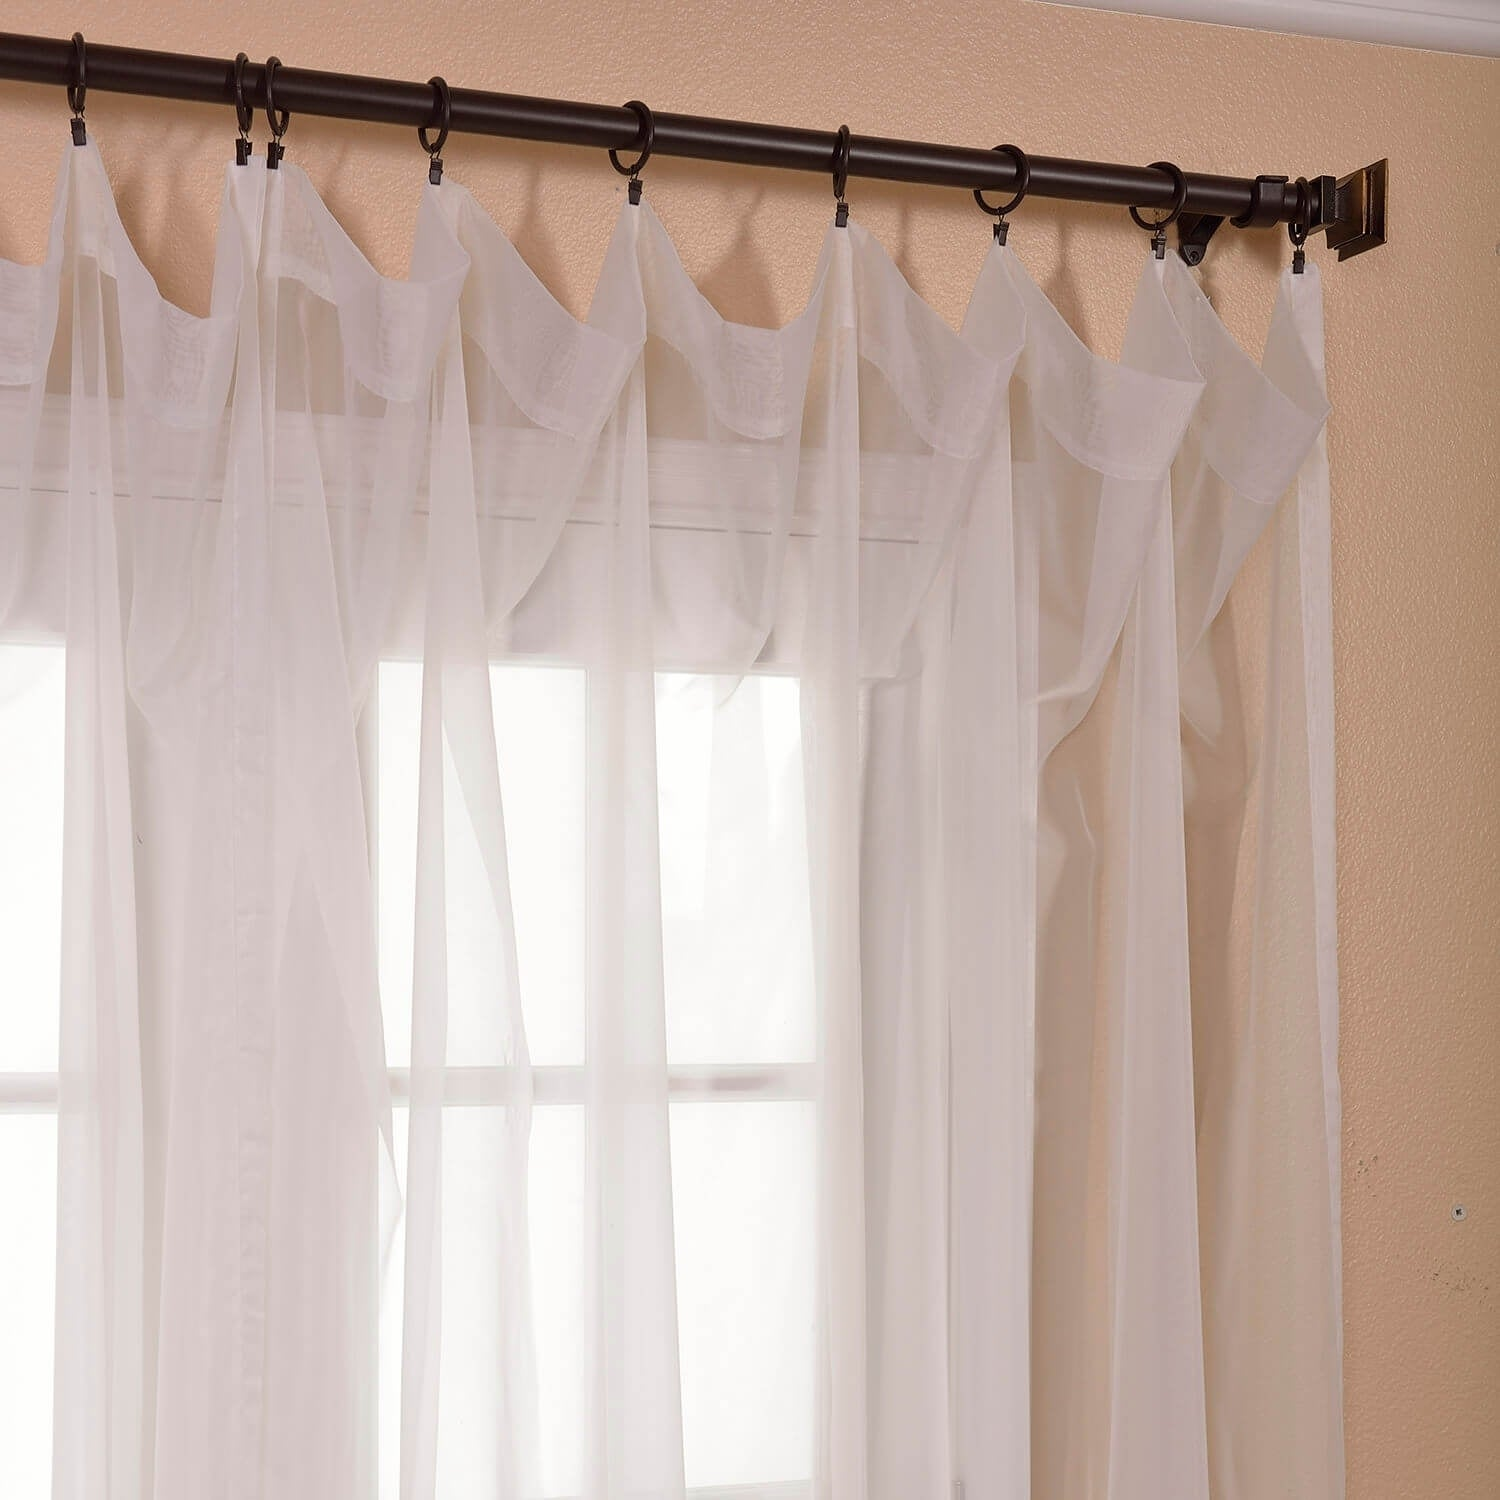 Exclusive Fabrics White Doublewide Voile Sheer Curtain Panel   Free  Shipping On Orders Over $45   Overstock.com   15595544